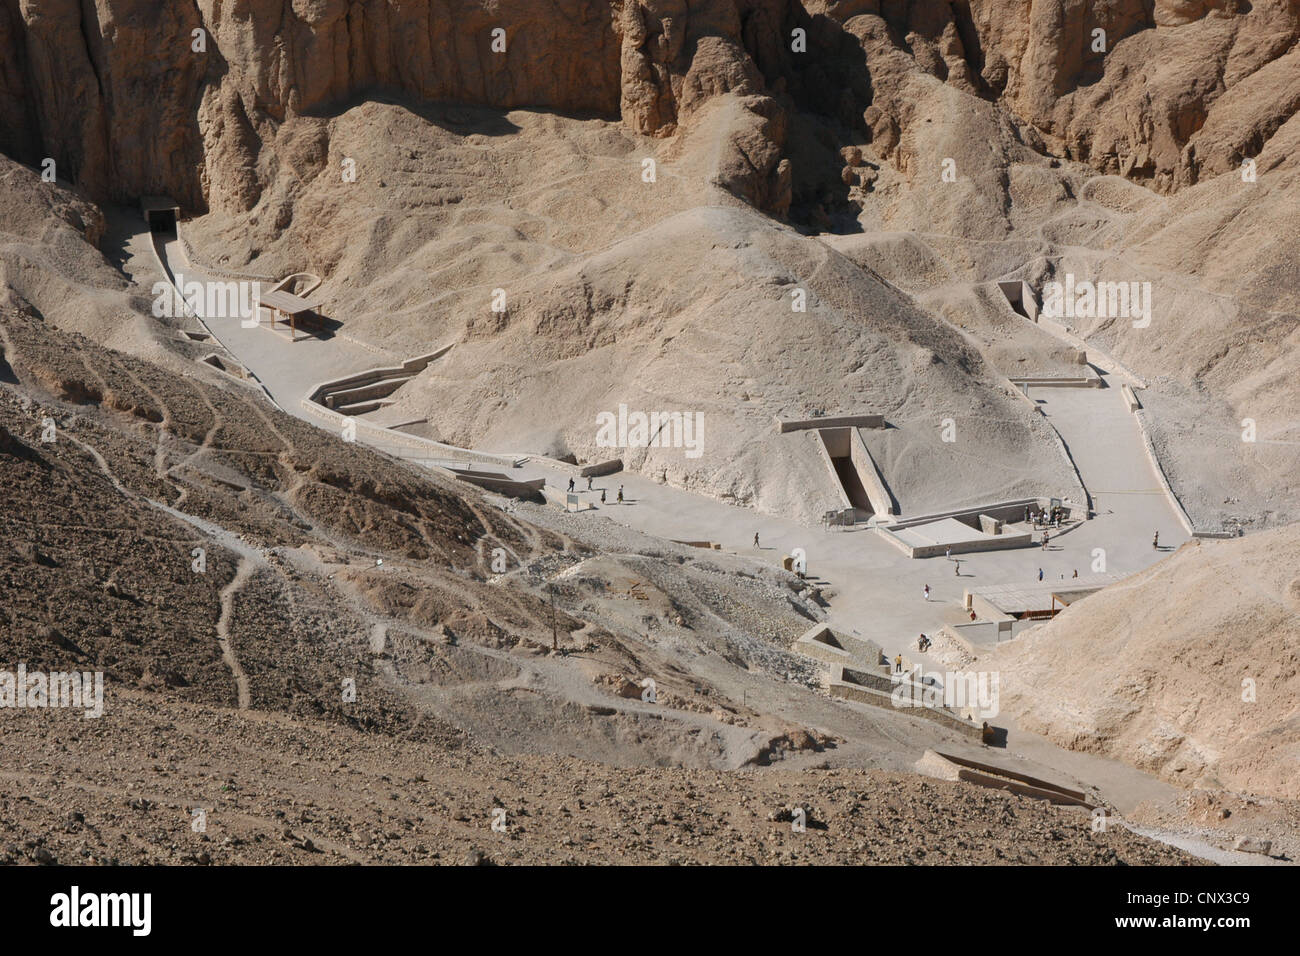 Tombs of Pharaoh Ramesses VI and Tutankhamun in the Valley of the Kings near Luxor, Egypt. - Stock Image